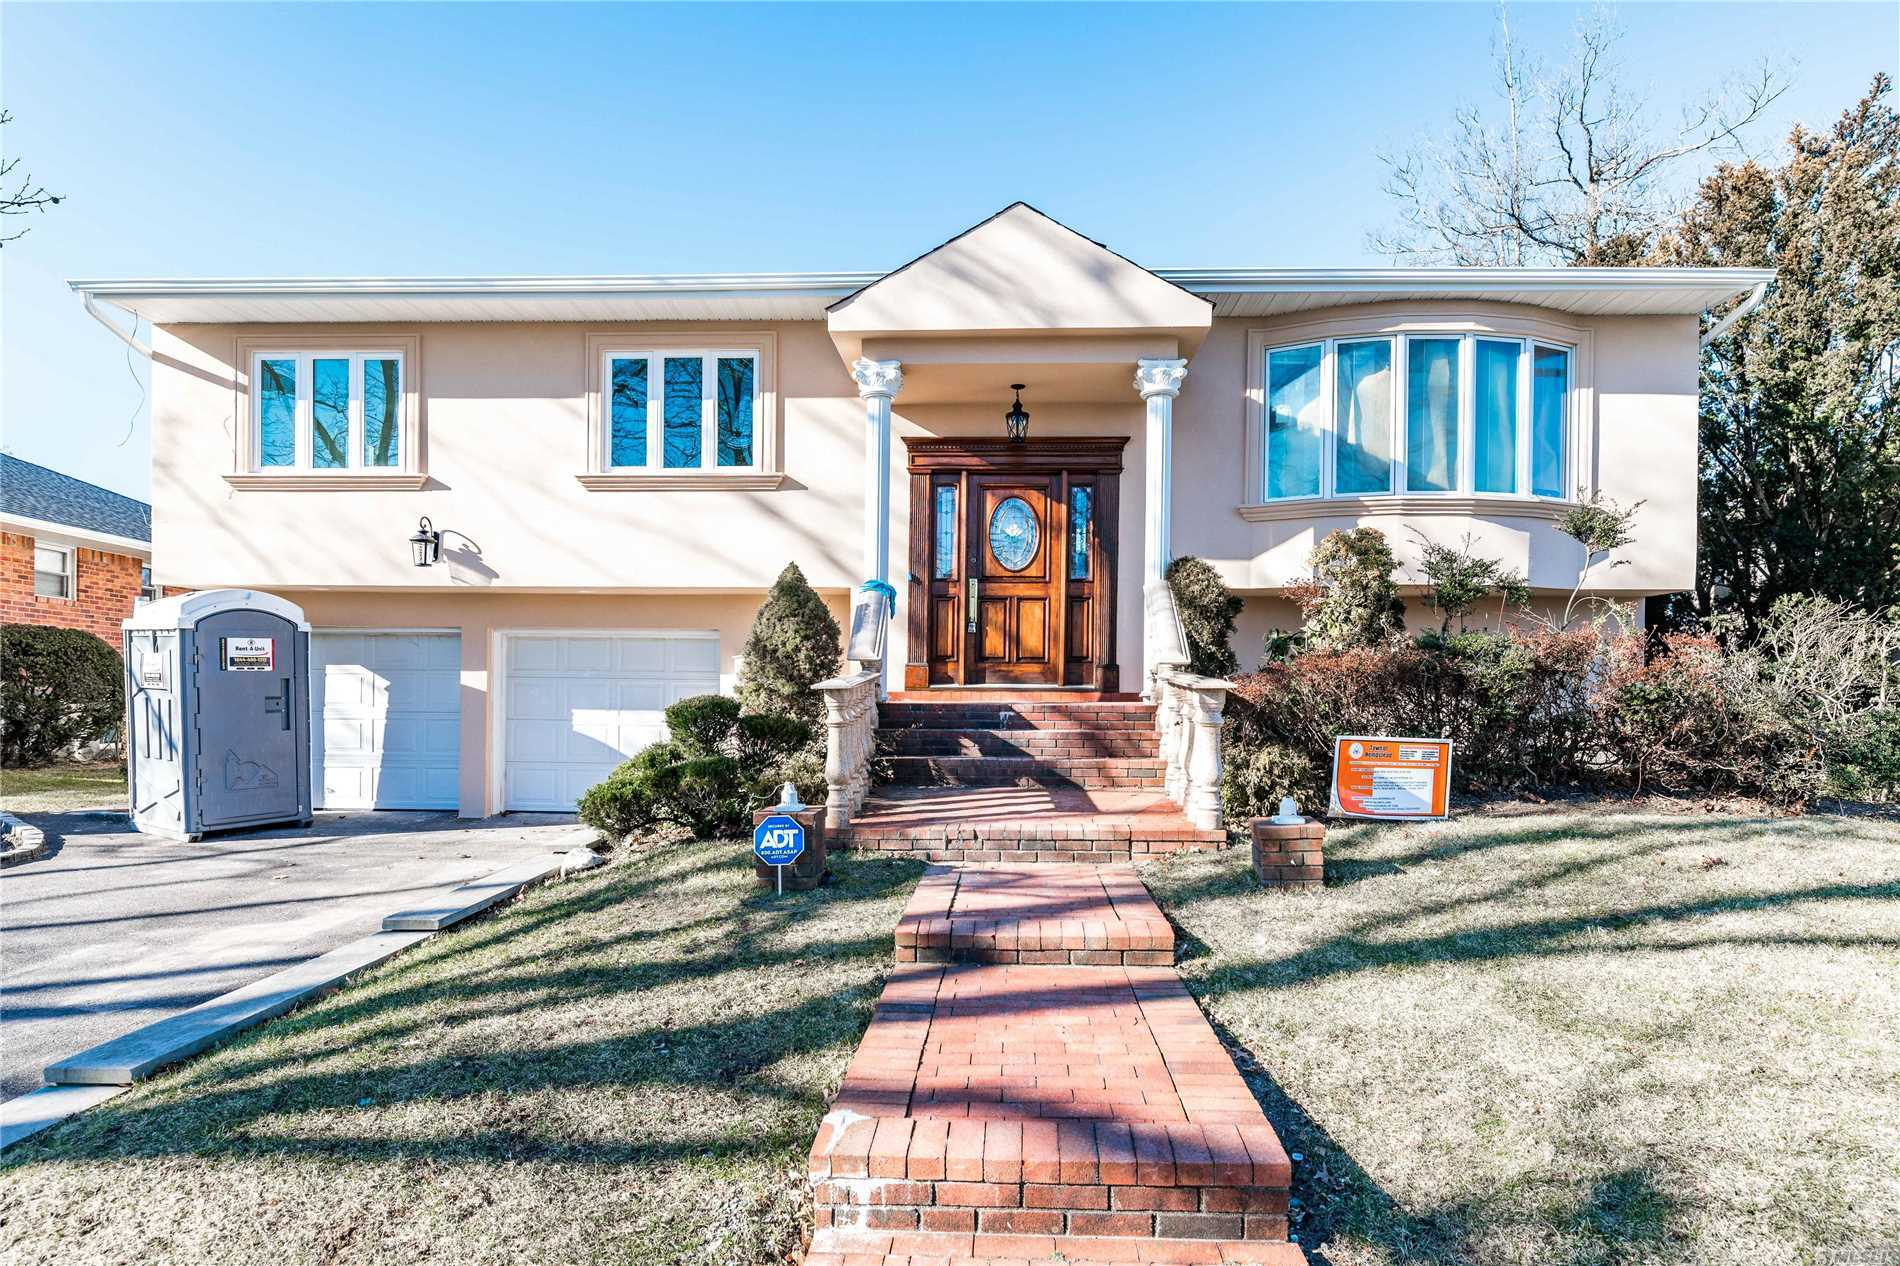 Extraordinary Beautifully Renovated Hi Ranch Nestled In North Woodmere. Fully Equipped Rare Beauty Of Excellence & Perfection. Magnificence Designed State Of The Art Kitchen With Stainless Steel Appliances. Top Of The Line Doors & Windows. Central Vacuum. Navien Condensing Tankless Water Heaters & Boilers. Central A/C With High Efficient Energy Save. Stunning Specious Backyard